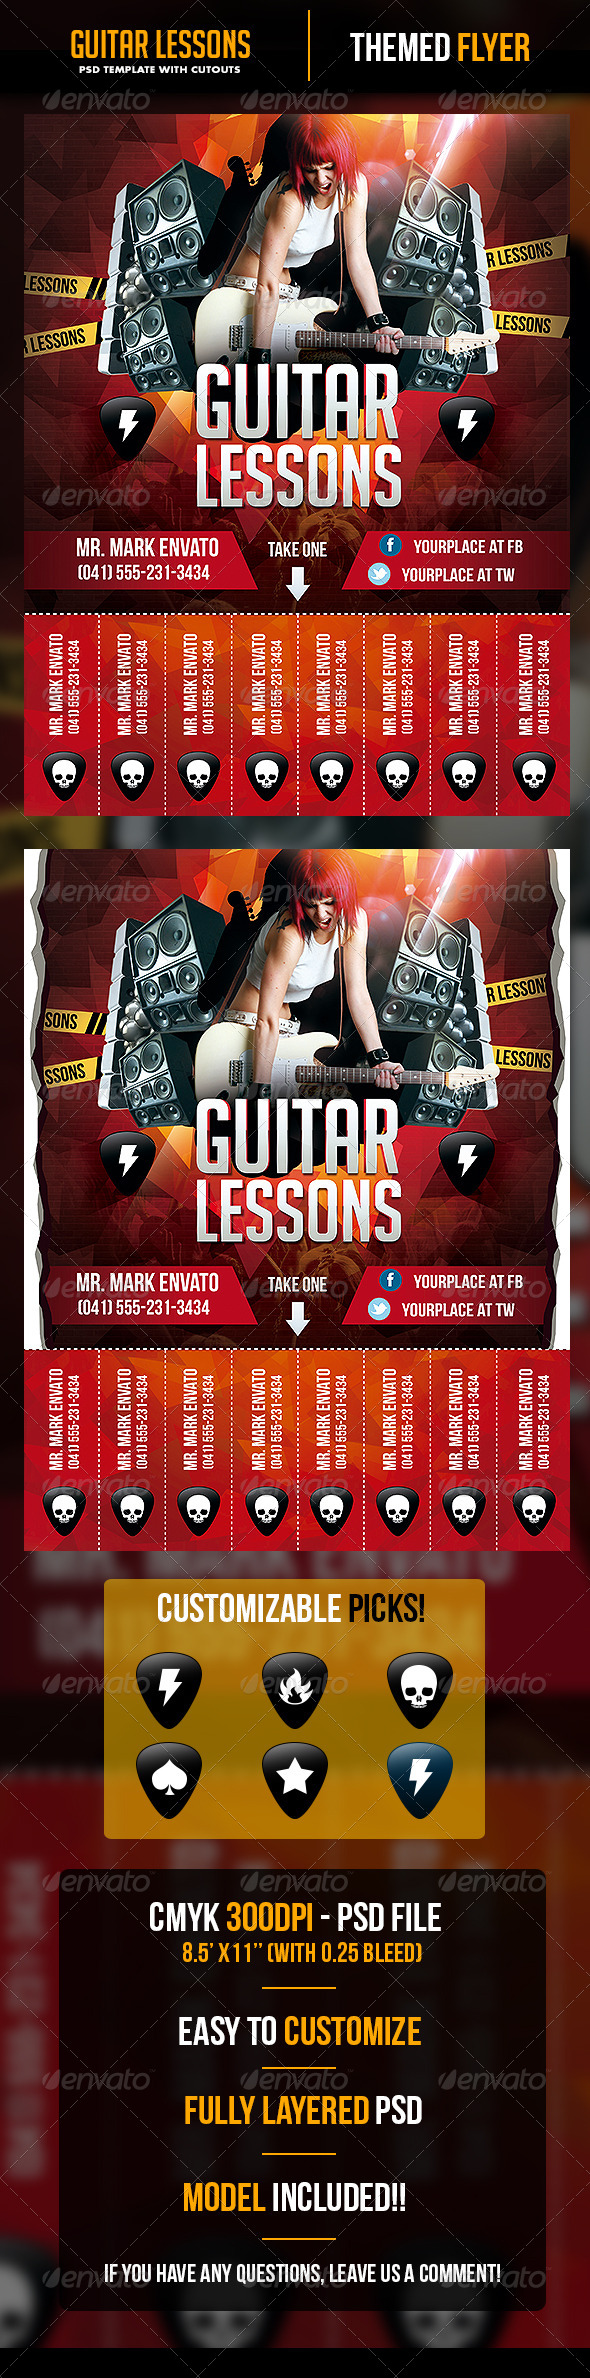 Guitar Lessons Flyer Template with Cutouts - Flyers Print Templates